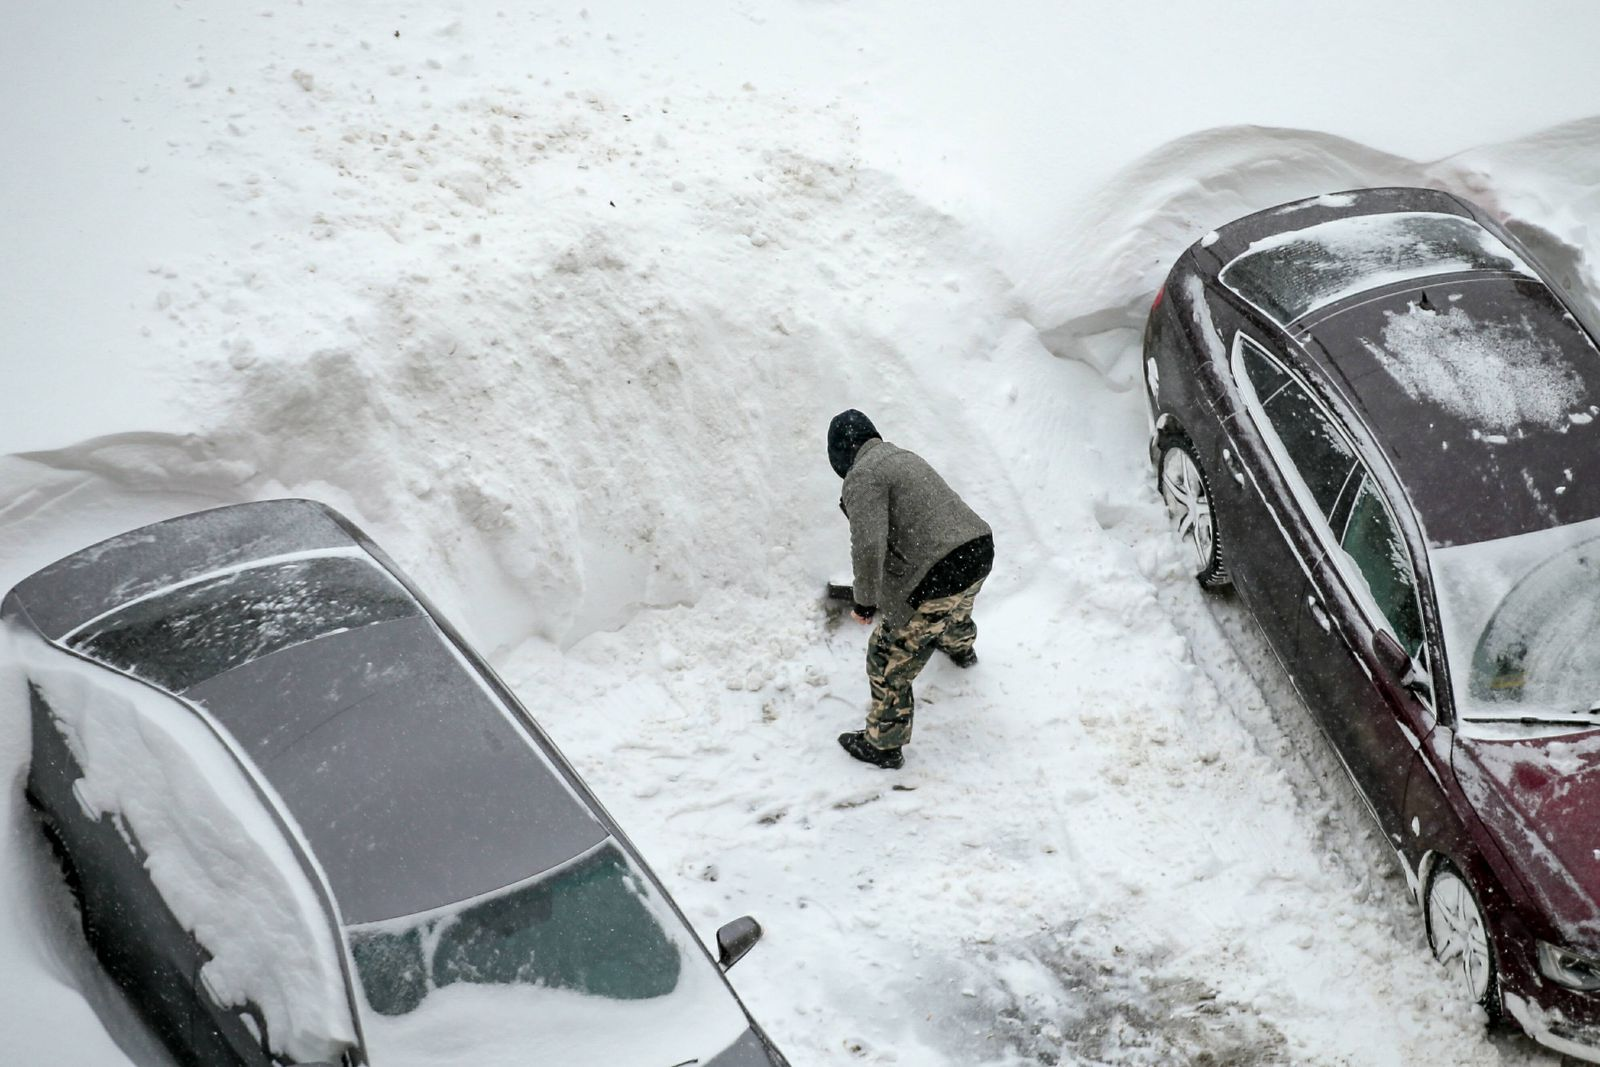 Heavy snowfall in Moscow, Russia. Car in traffic heavy snowfall DmitryxGolubovich